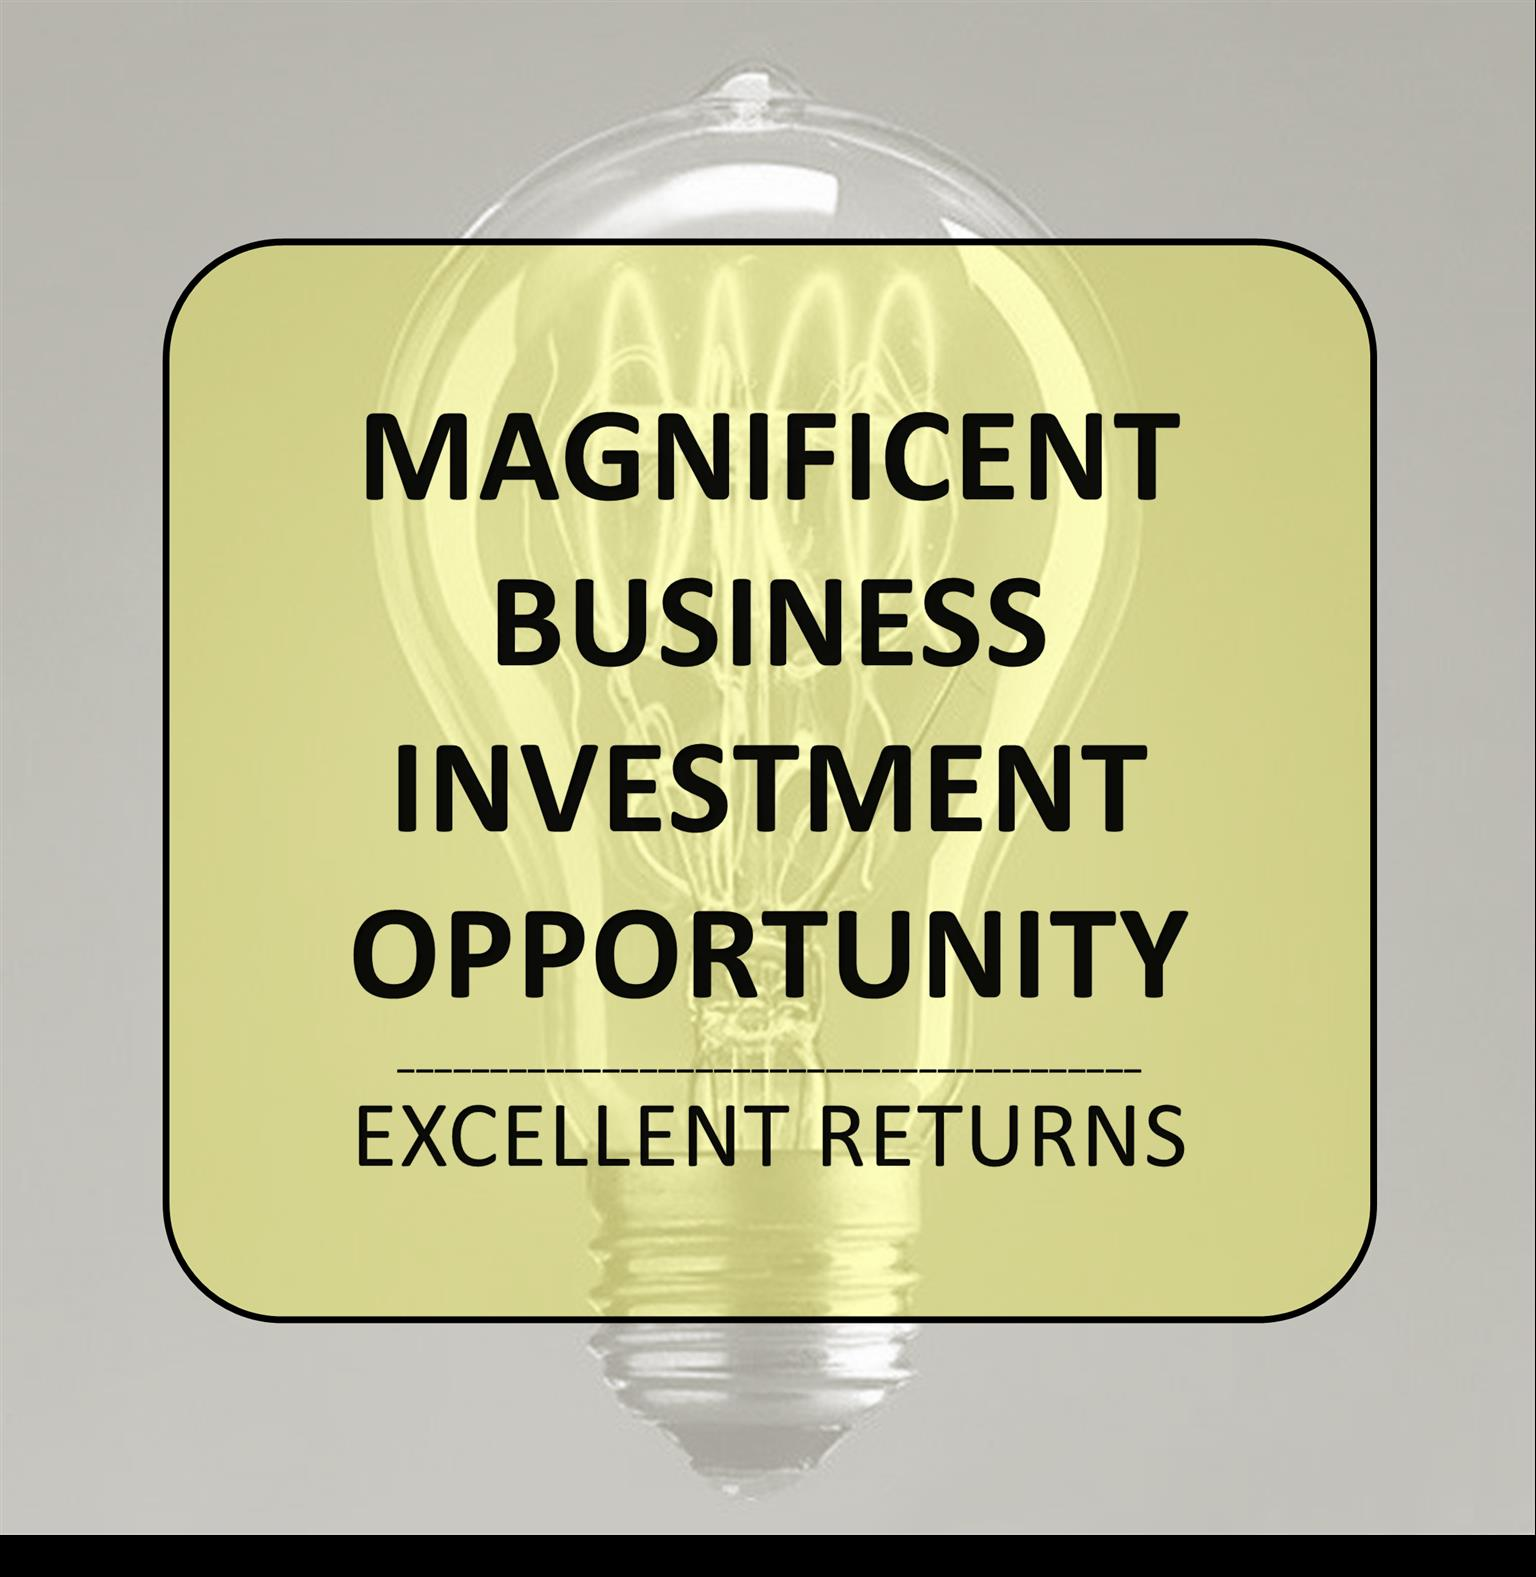 MAGNIFICENT INVESTMENT OPPORTUNITY IN NATIONAL BUSINESS EXPANSION PROGRAM